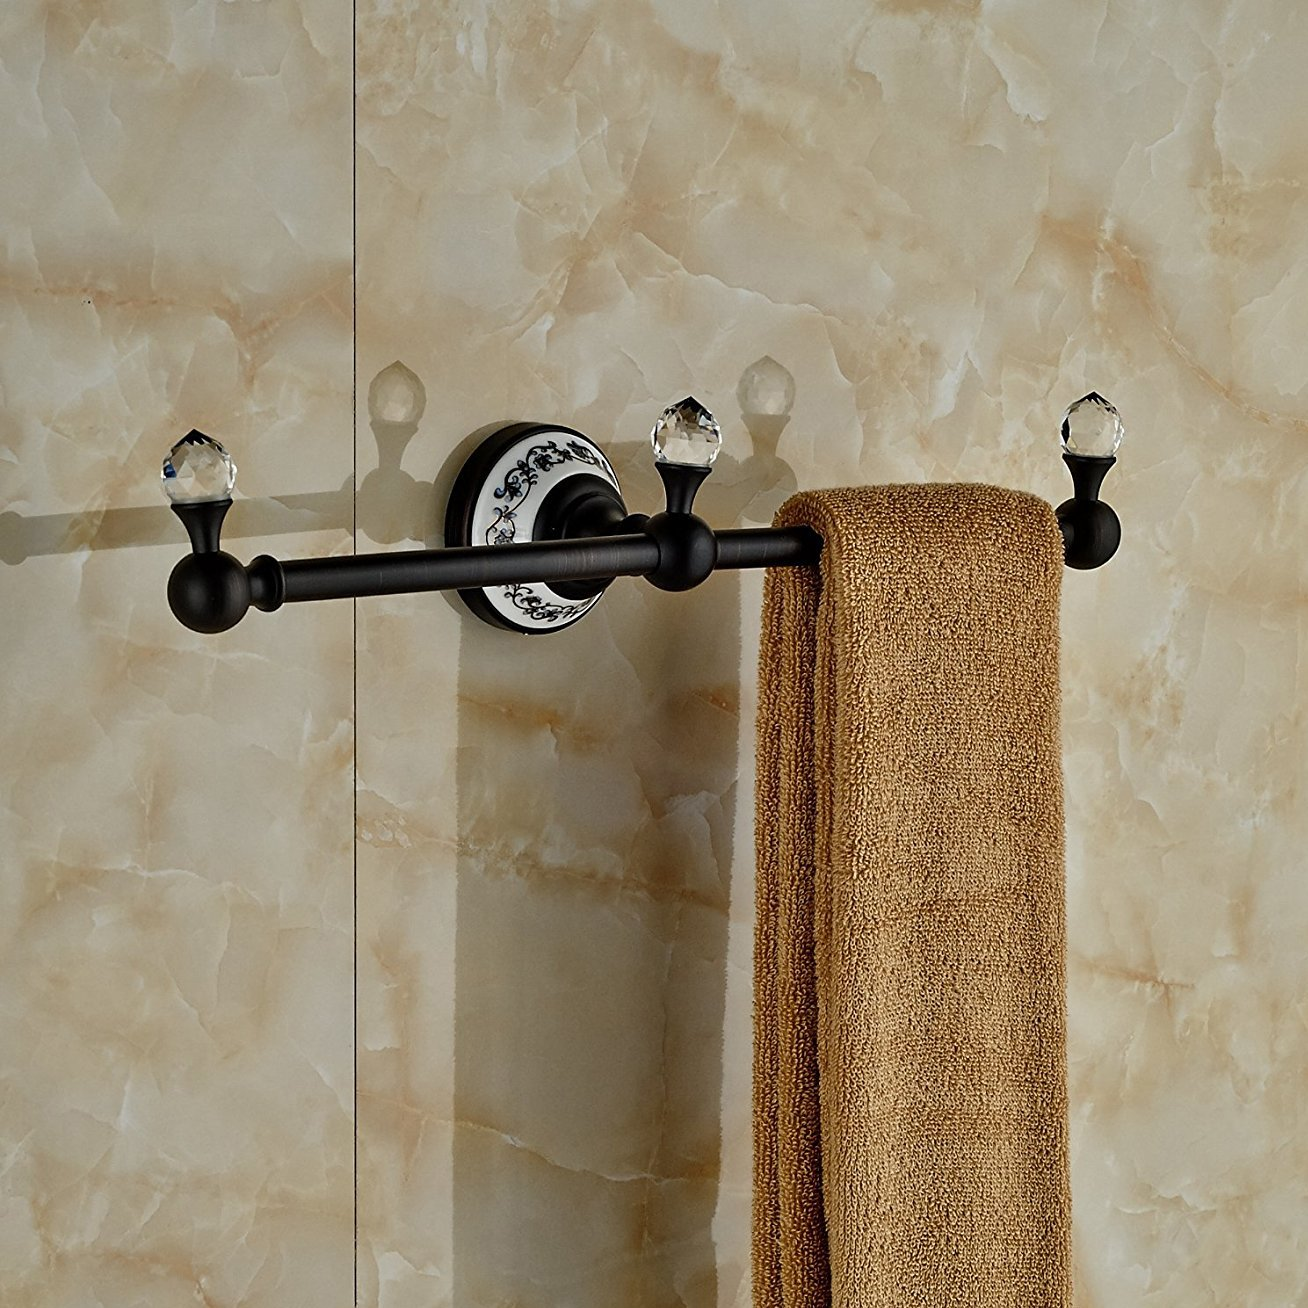 Luxury Crystal Deco Bath Towel Bar Wall Mounted Towel Rac Hanger (Oil Rubbed Bronze)